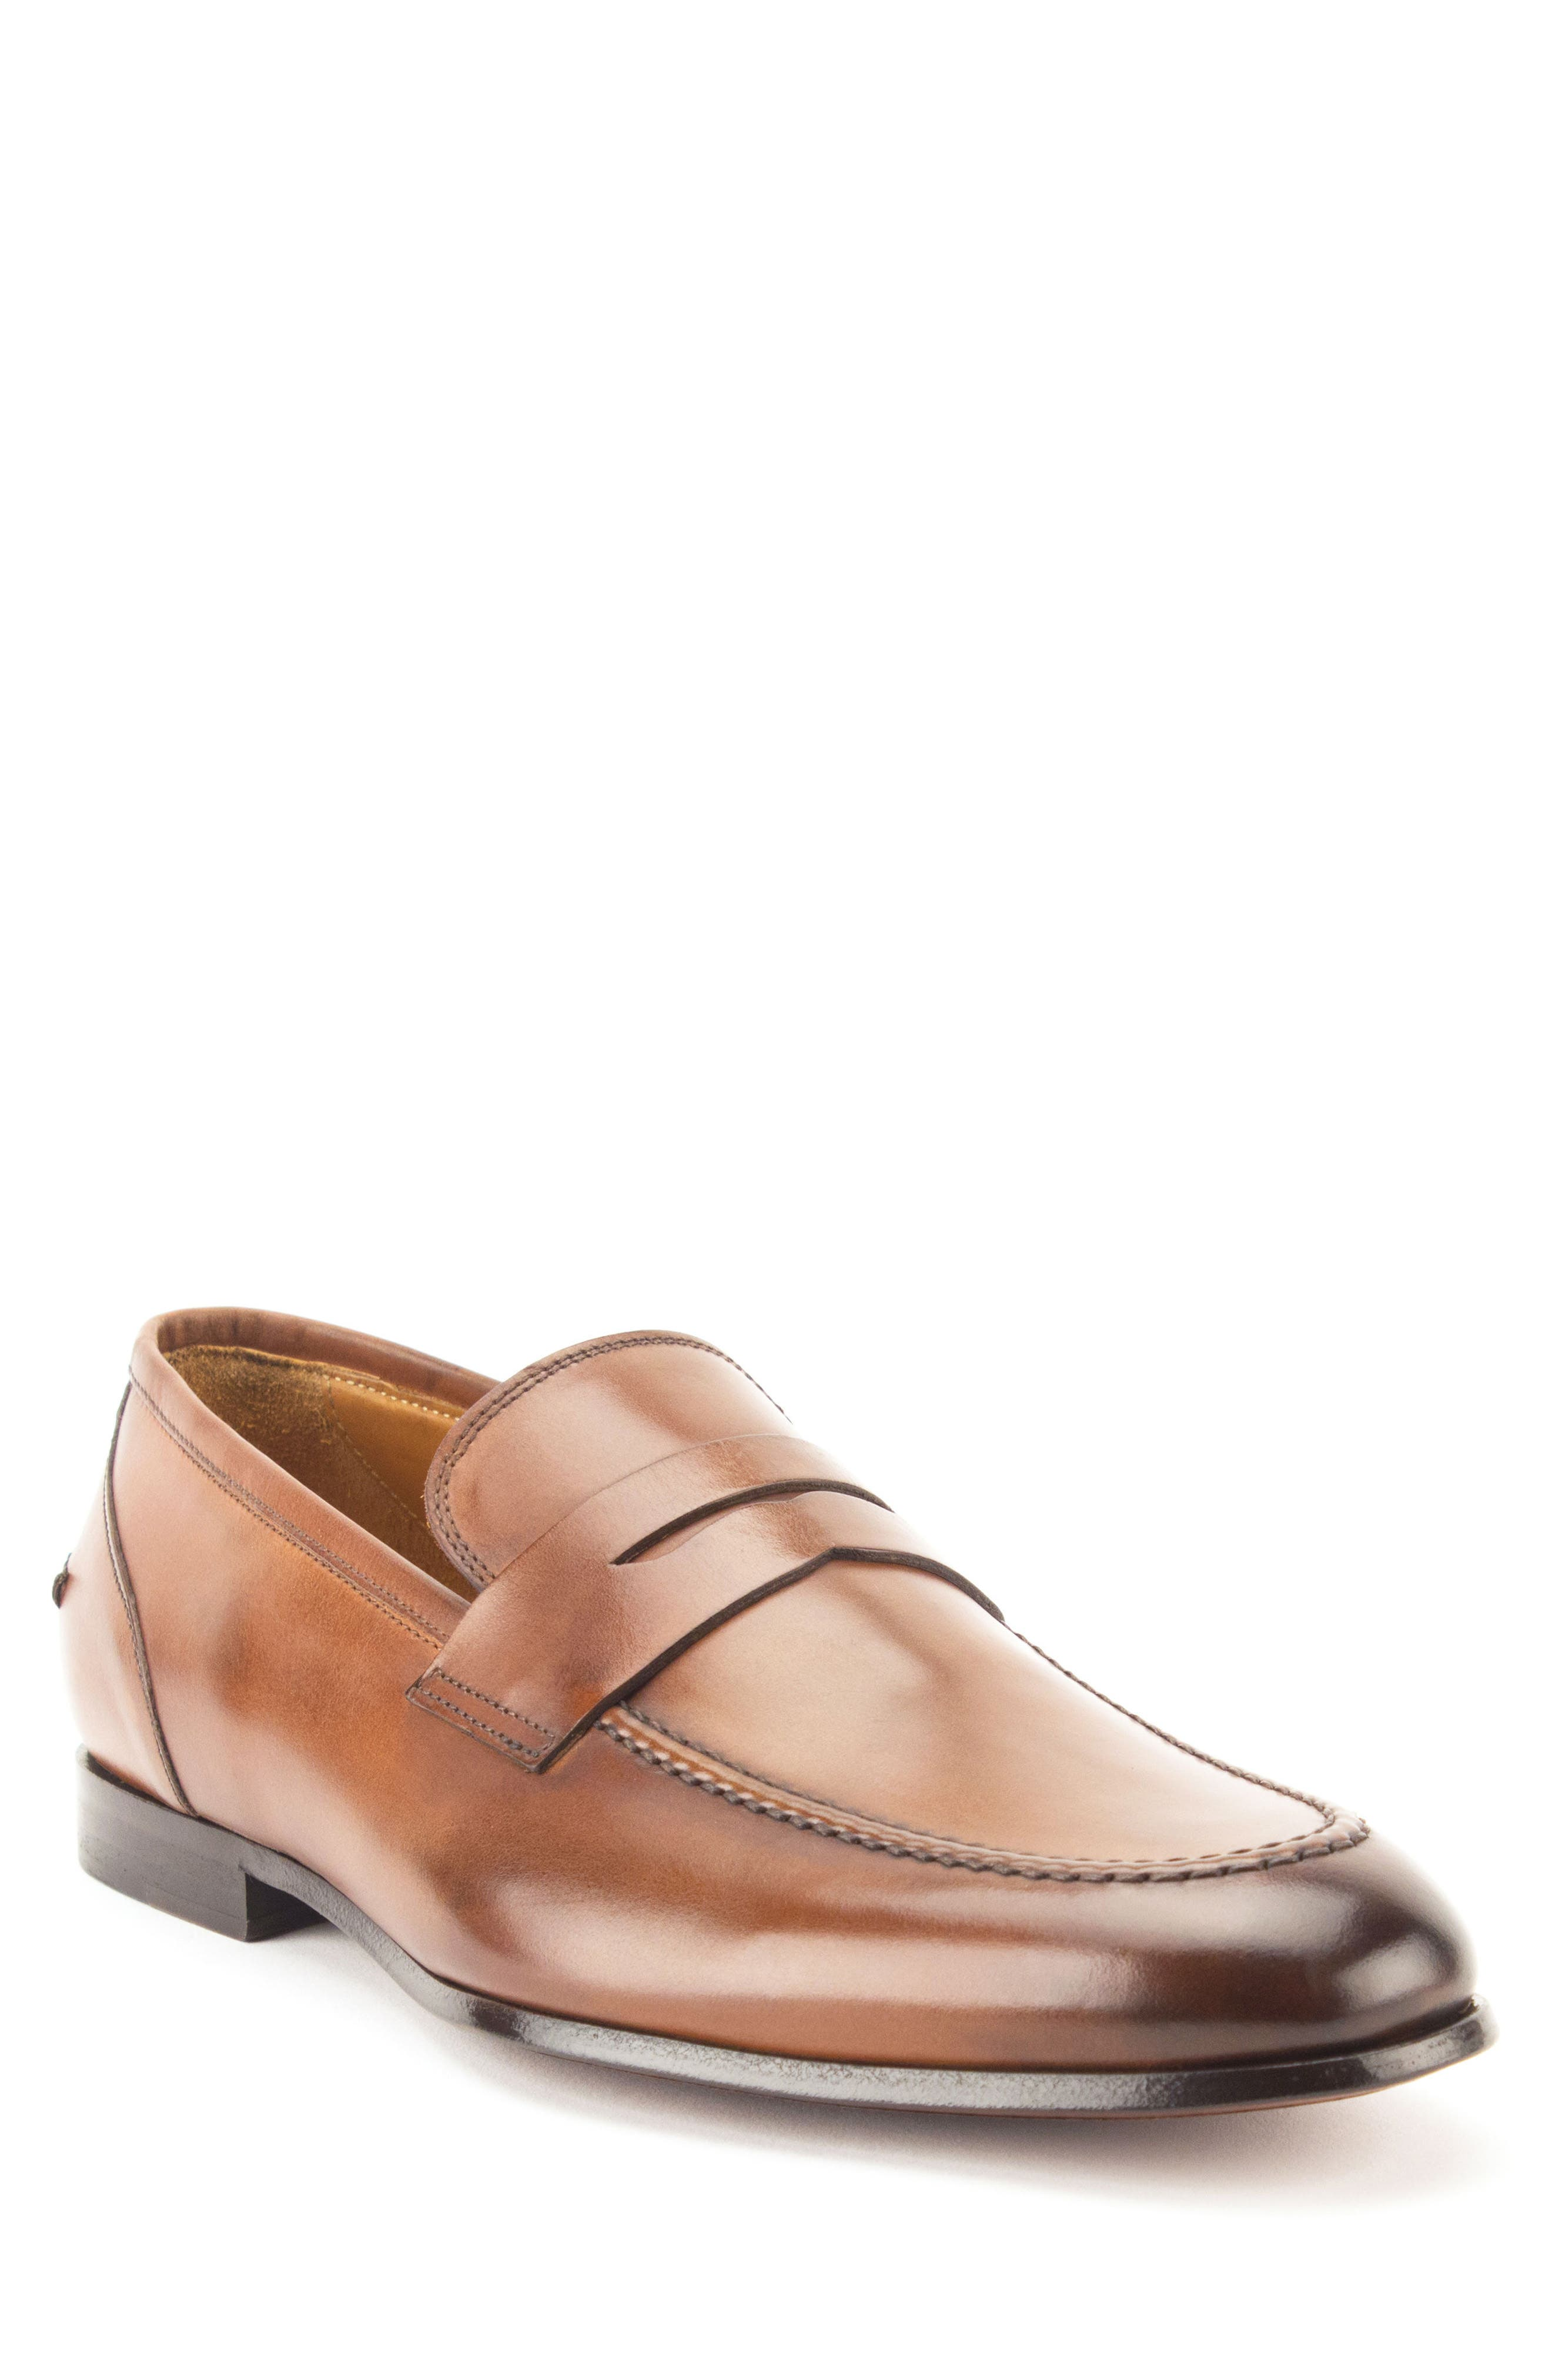 Coleman Apron Toe Penny Loafer,                         Main,                         color, Tan Leather